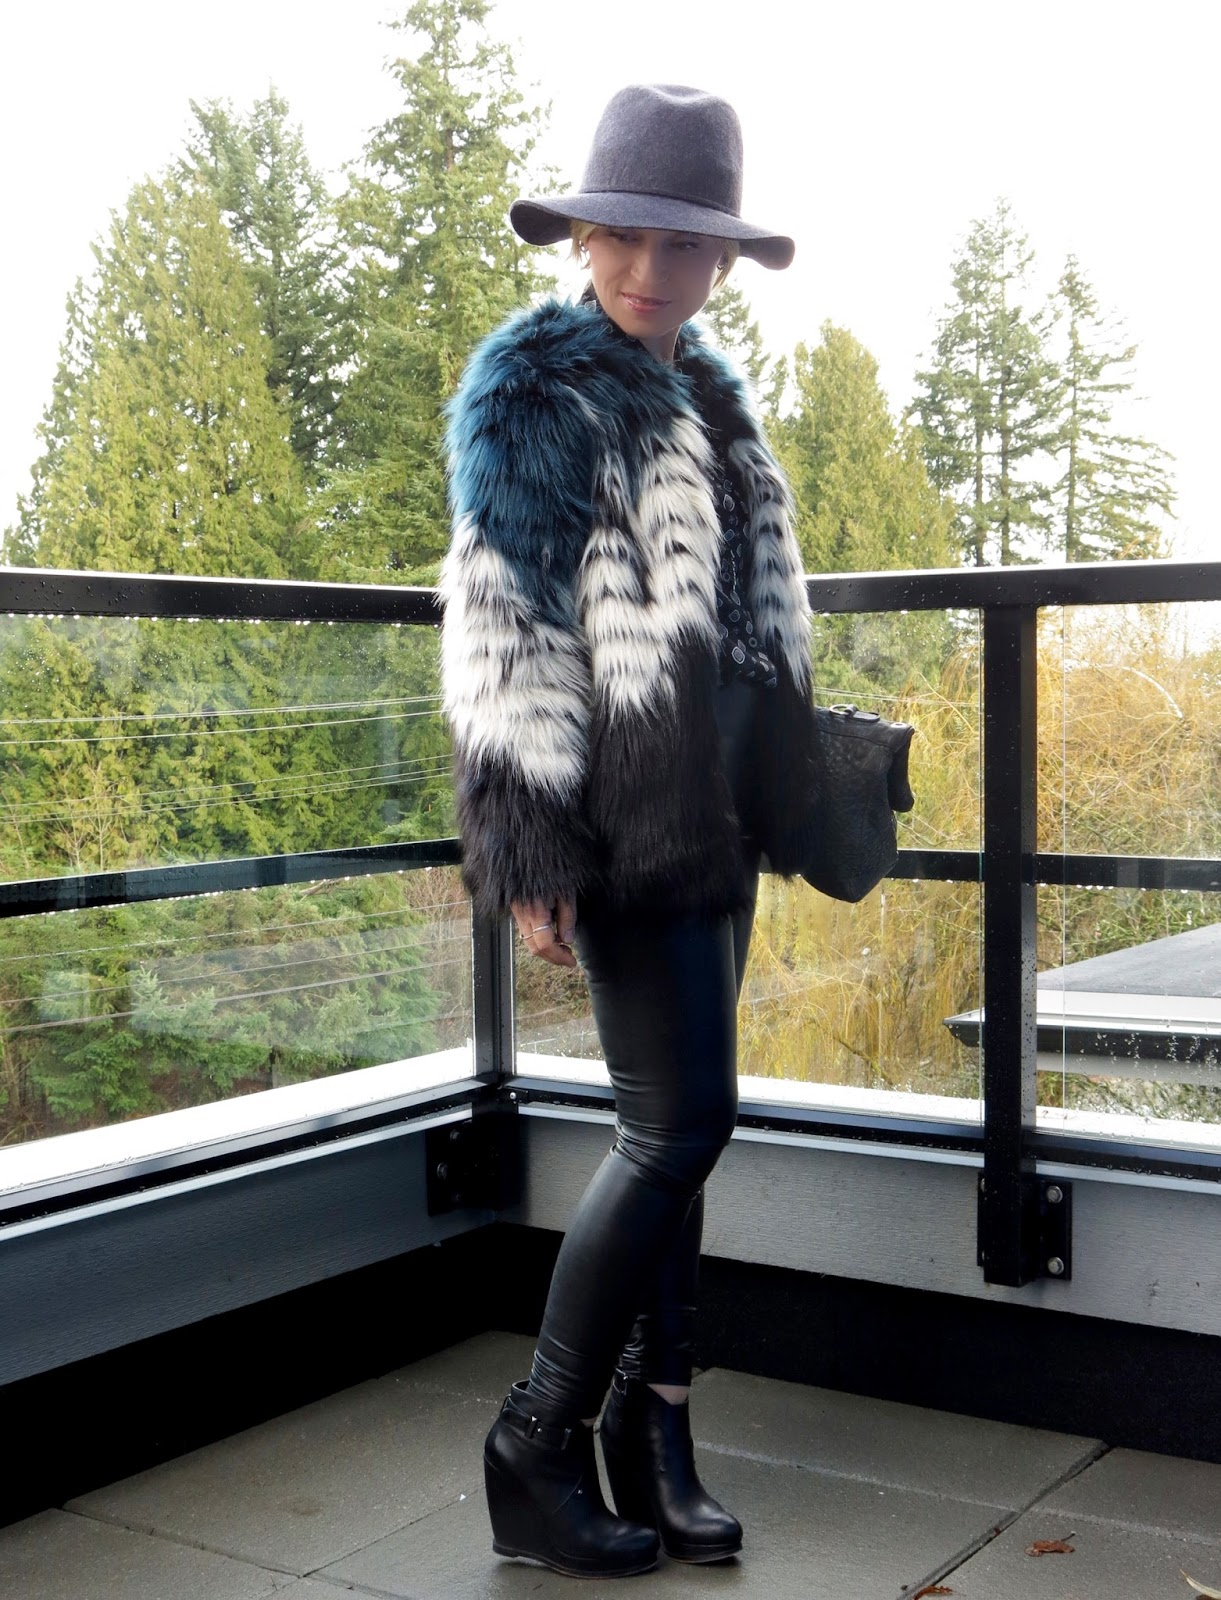 styling a faux-fur jacket with vegan leather leggings, wedge booties, and a floppy hat